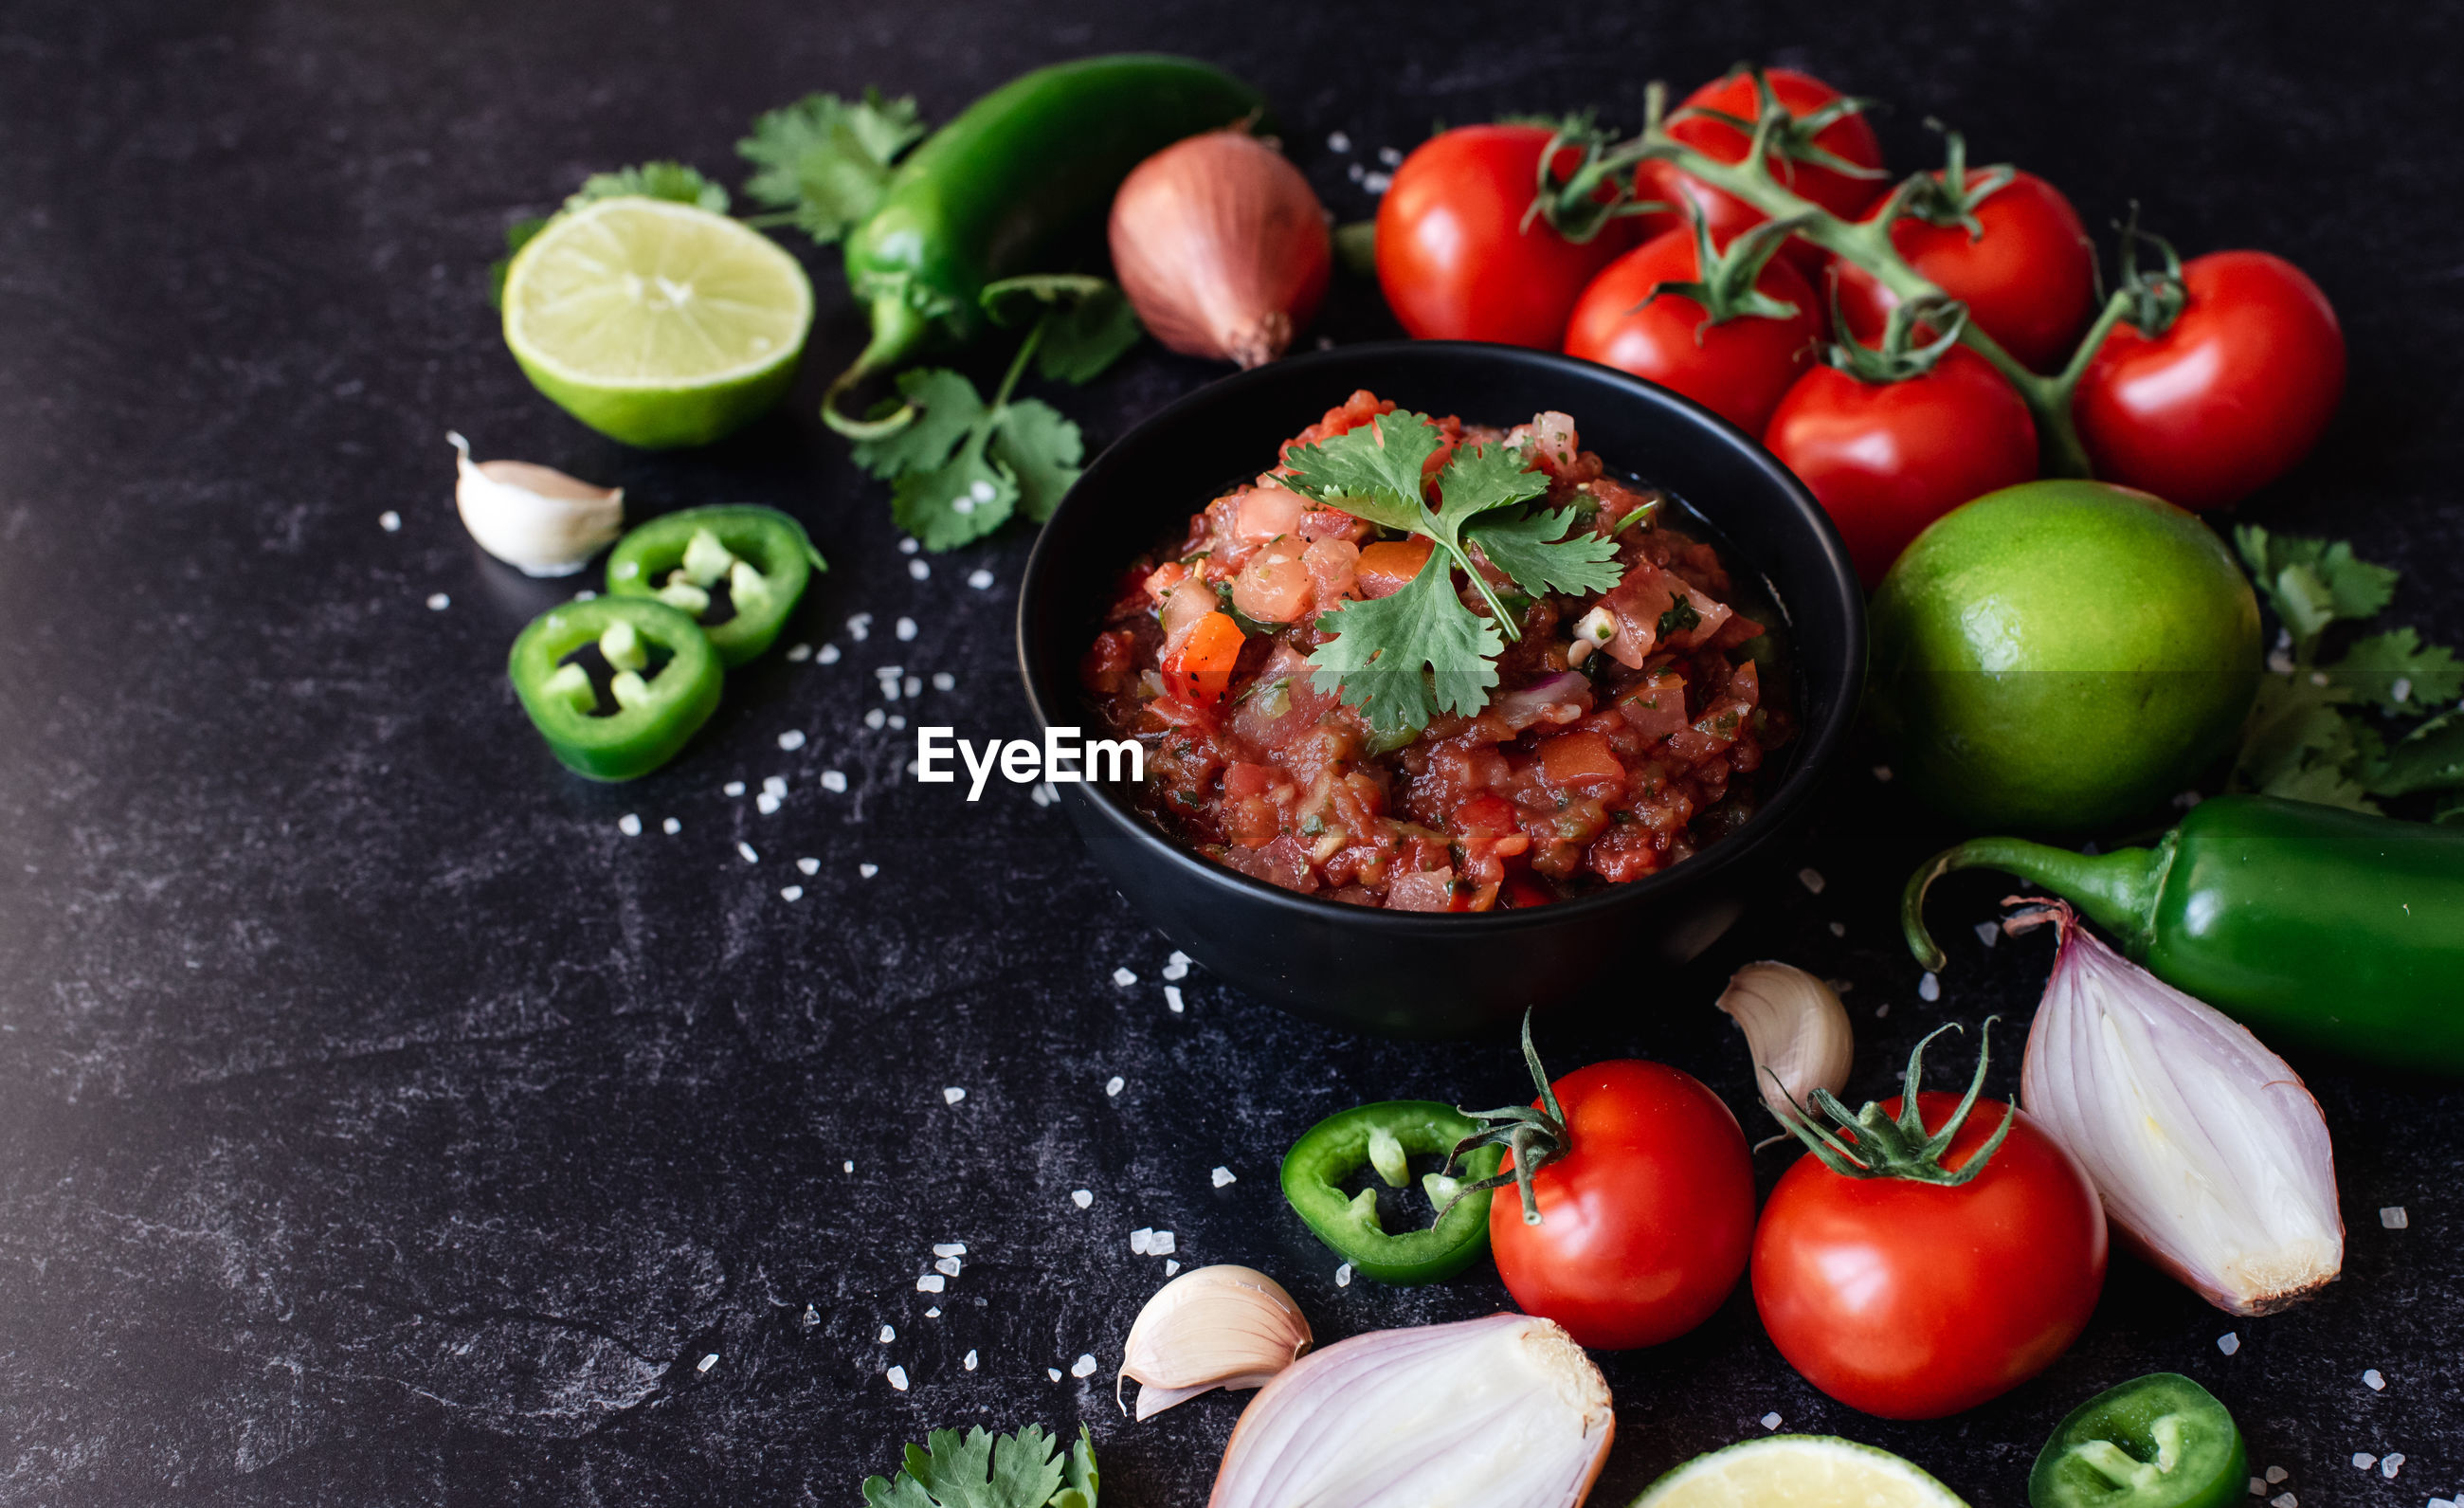 HIGH ANGLE VIEW OF TOMATOES AND VEGETABLES IN BOWL